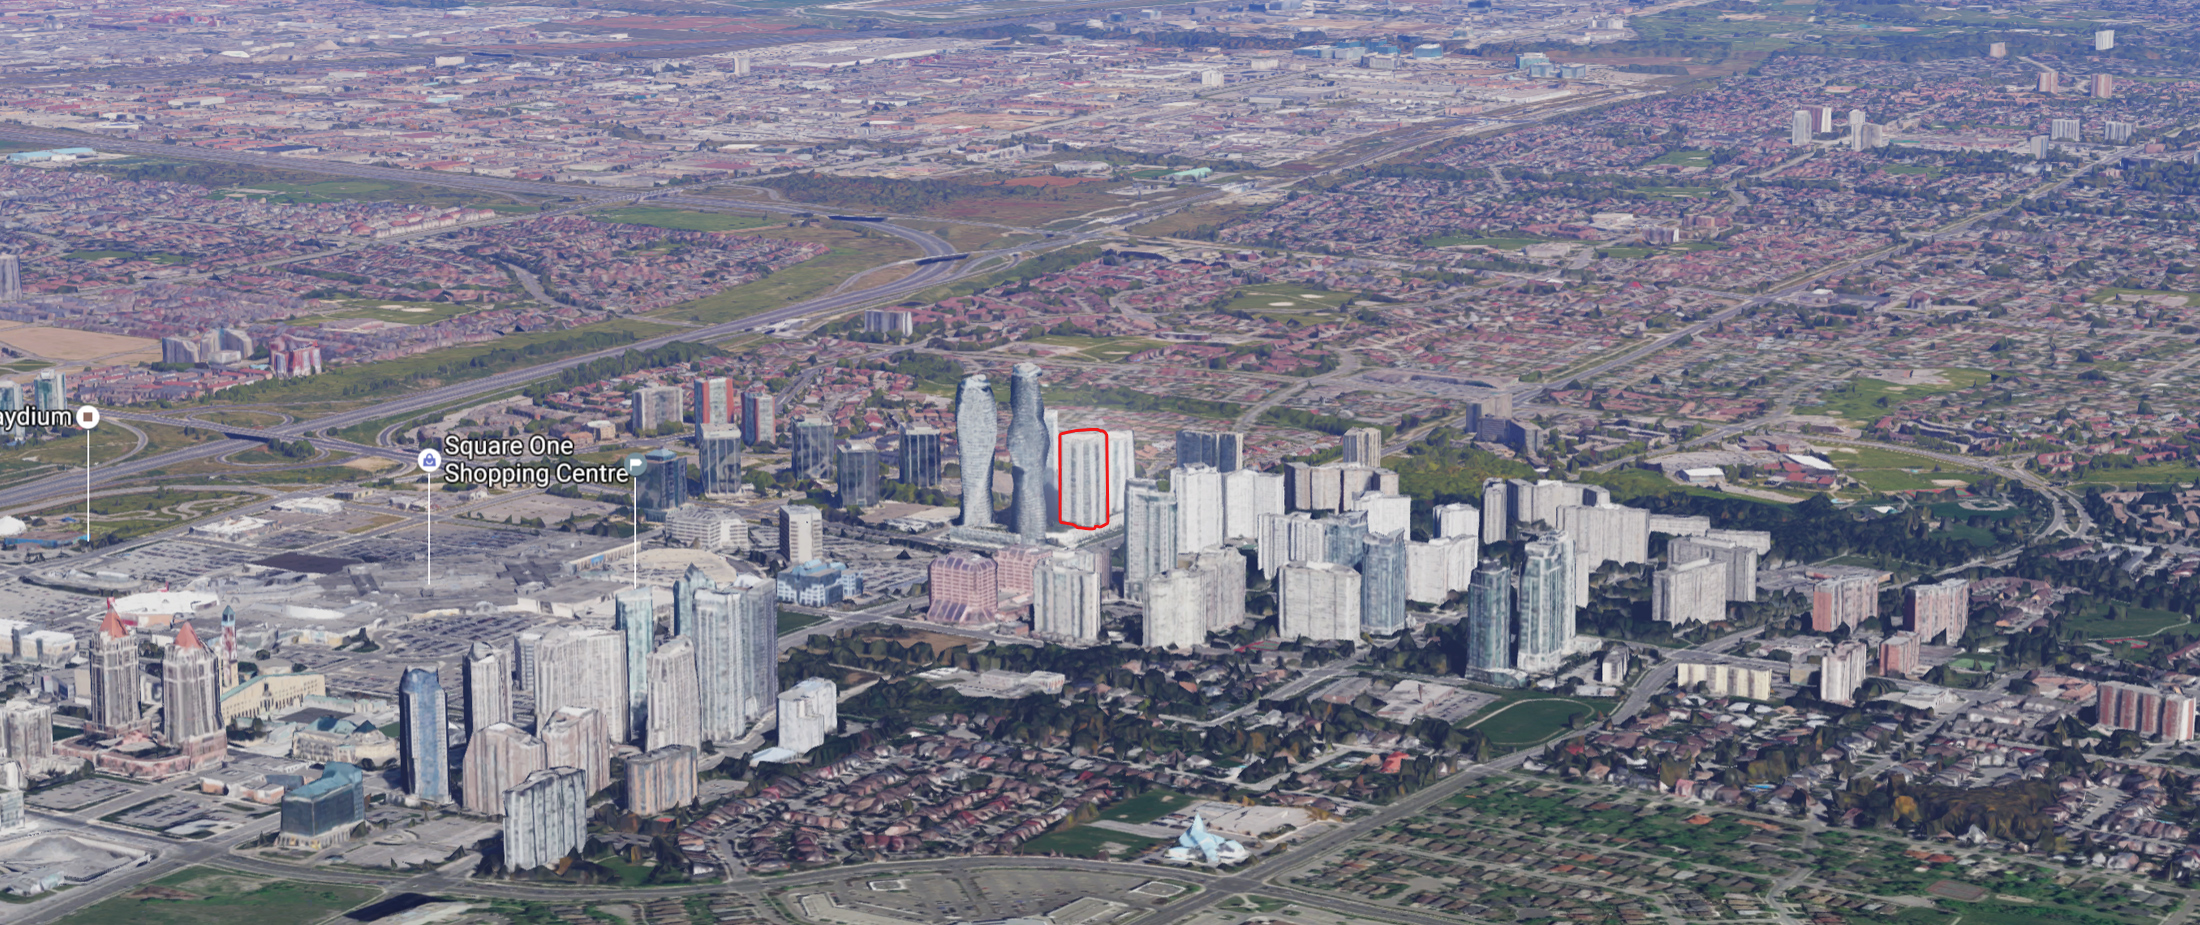 70 Absolute Avenue - Absolute World - Mississauga Aerial